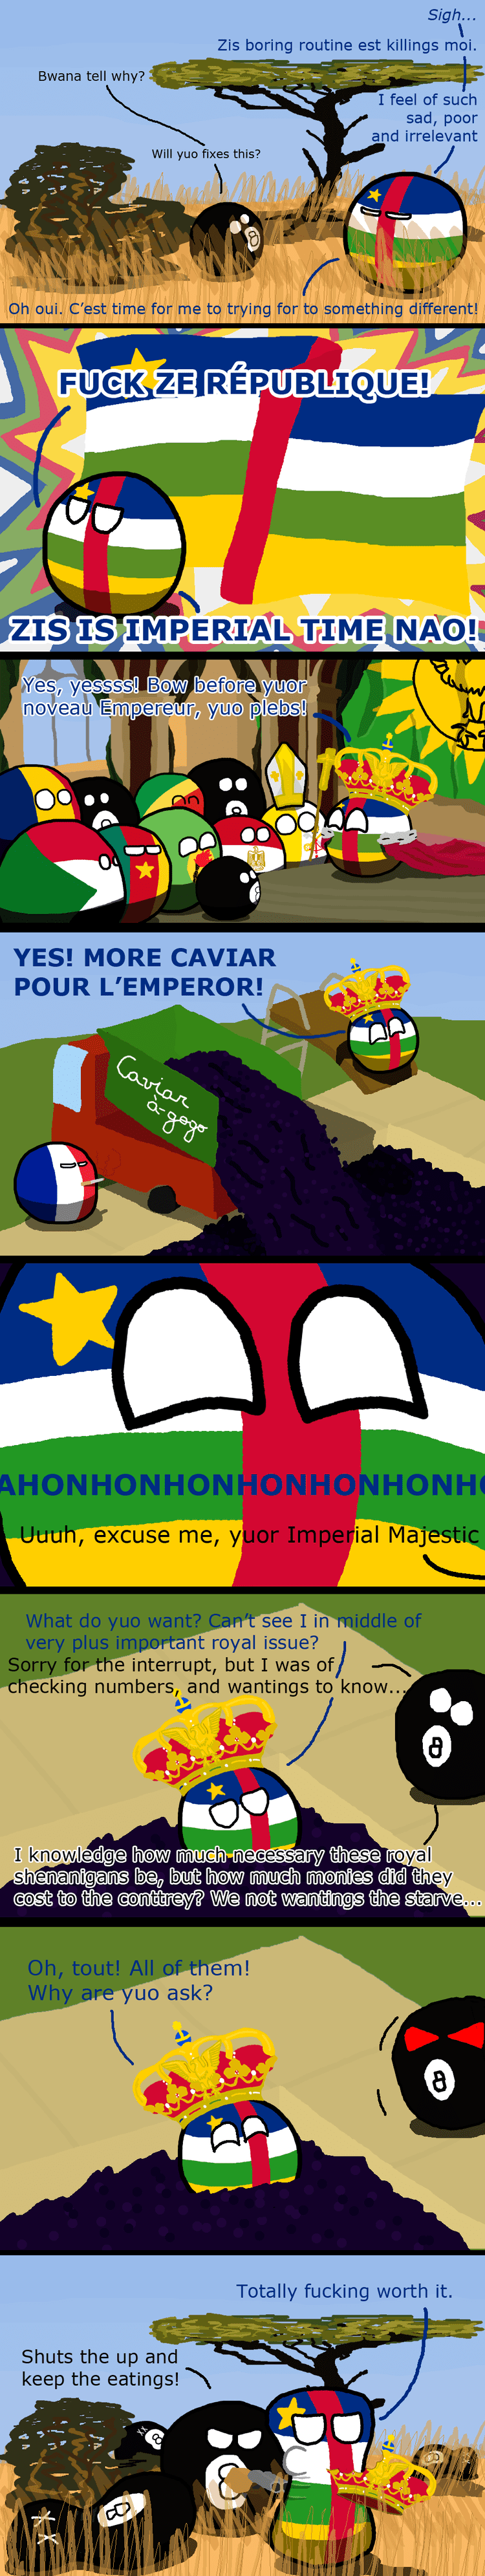 Central African Empire The Rise And Fall Of The Central African Empire polandball